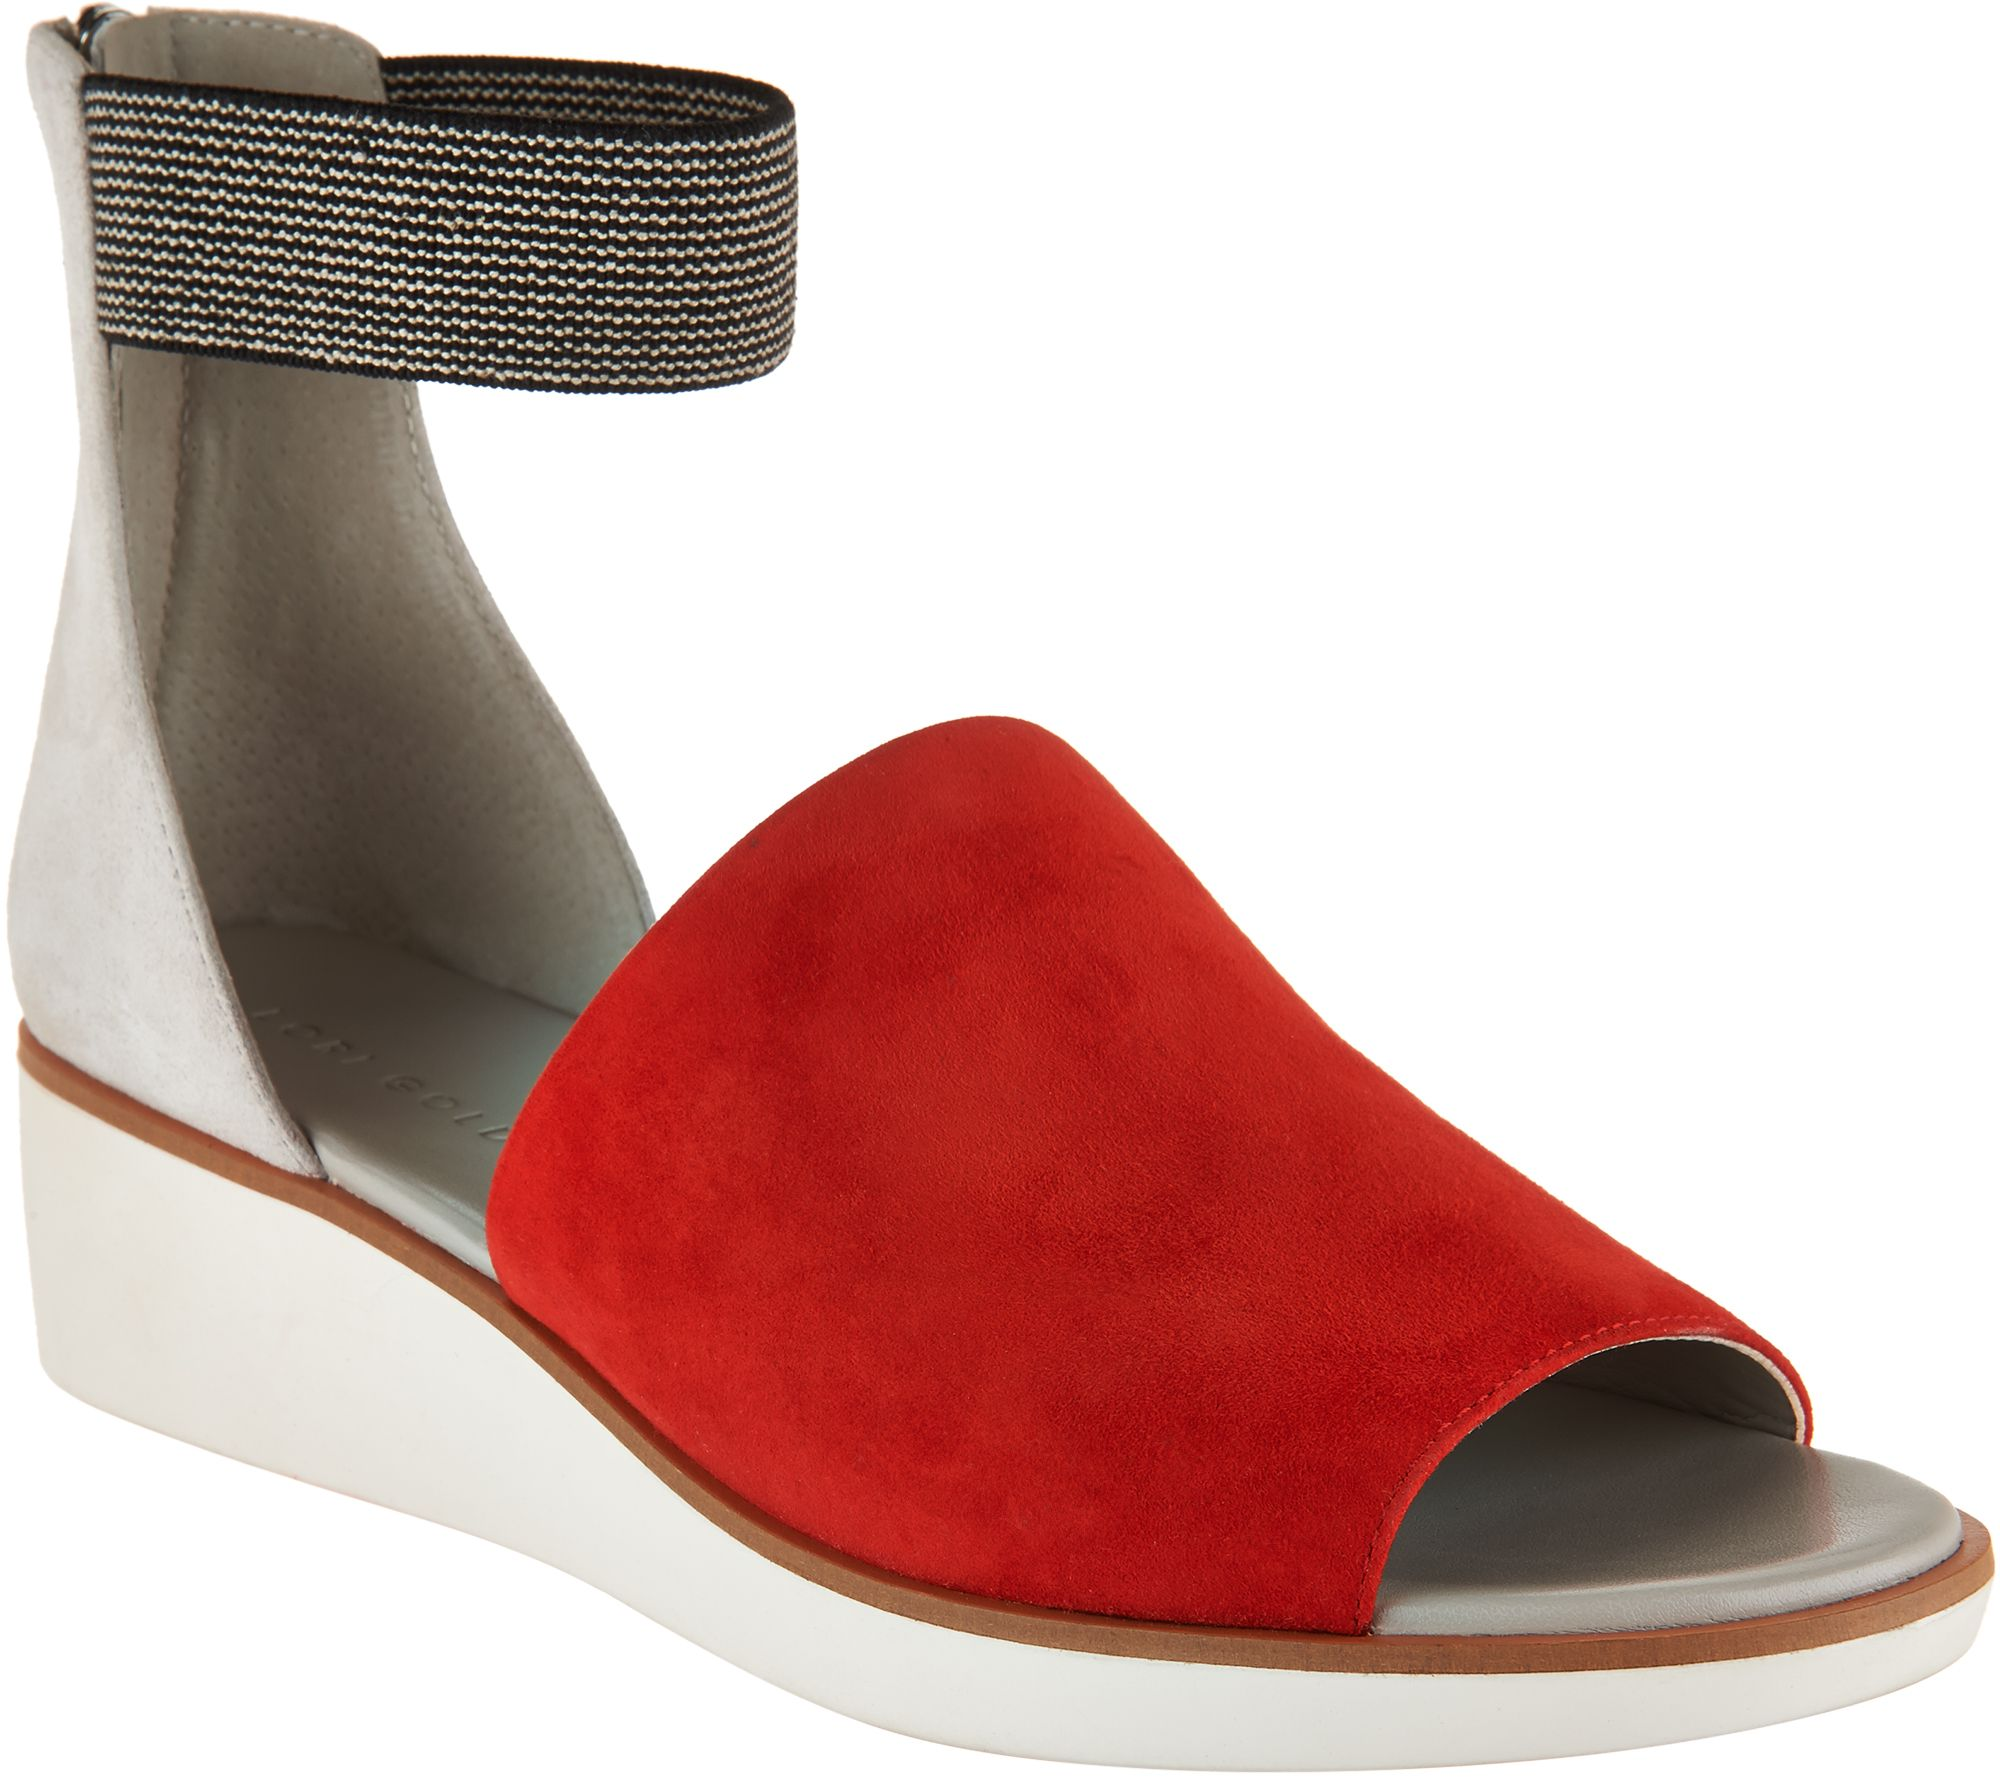 designer heels with red soles 0bgd  Lori Goldstein Collection Zip Back Sandals with Elastic Strap